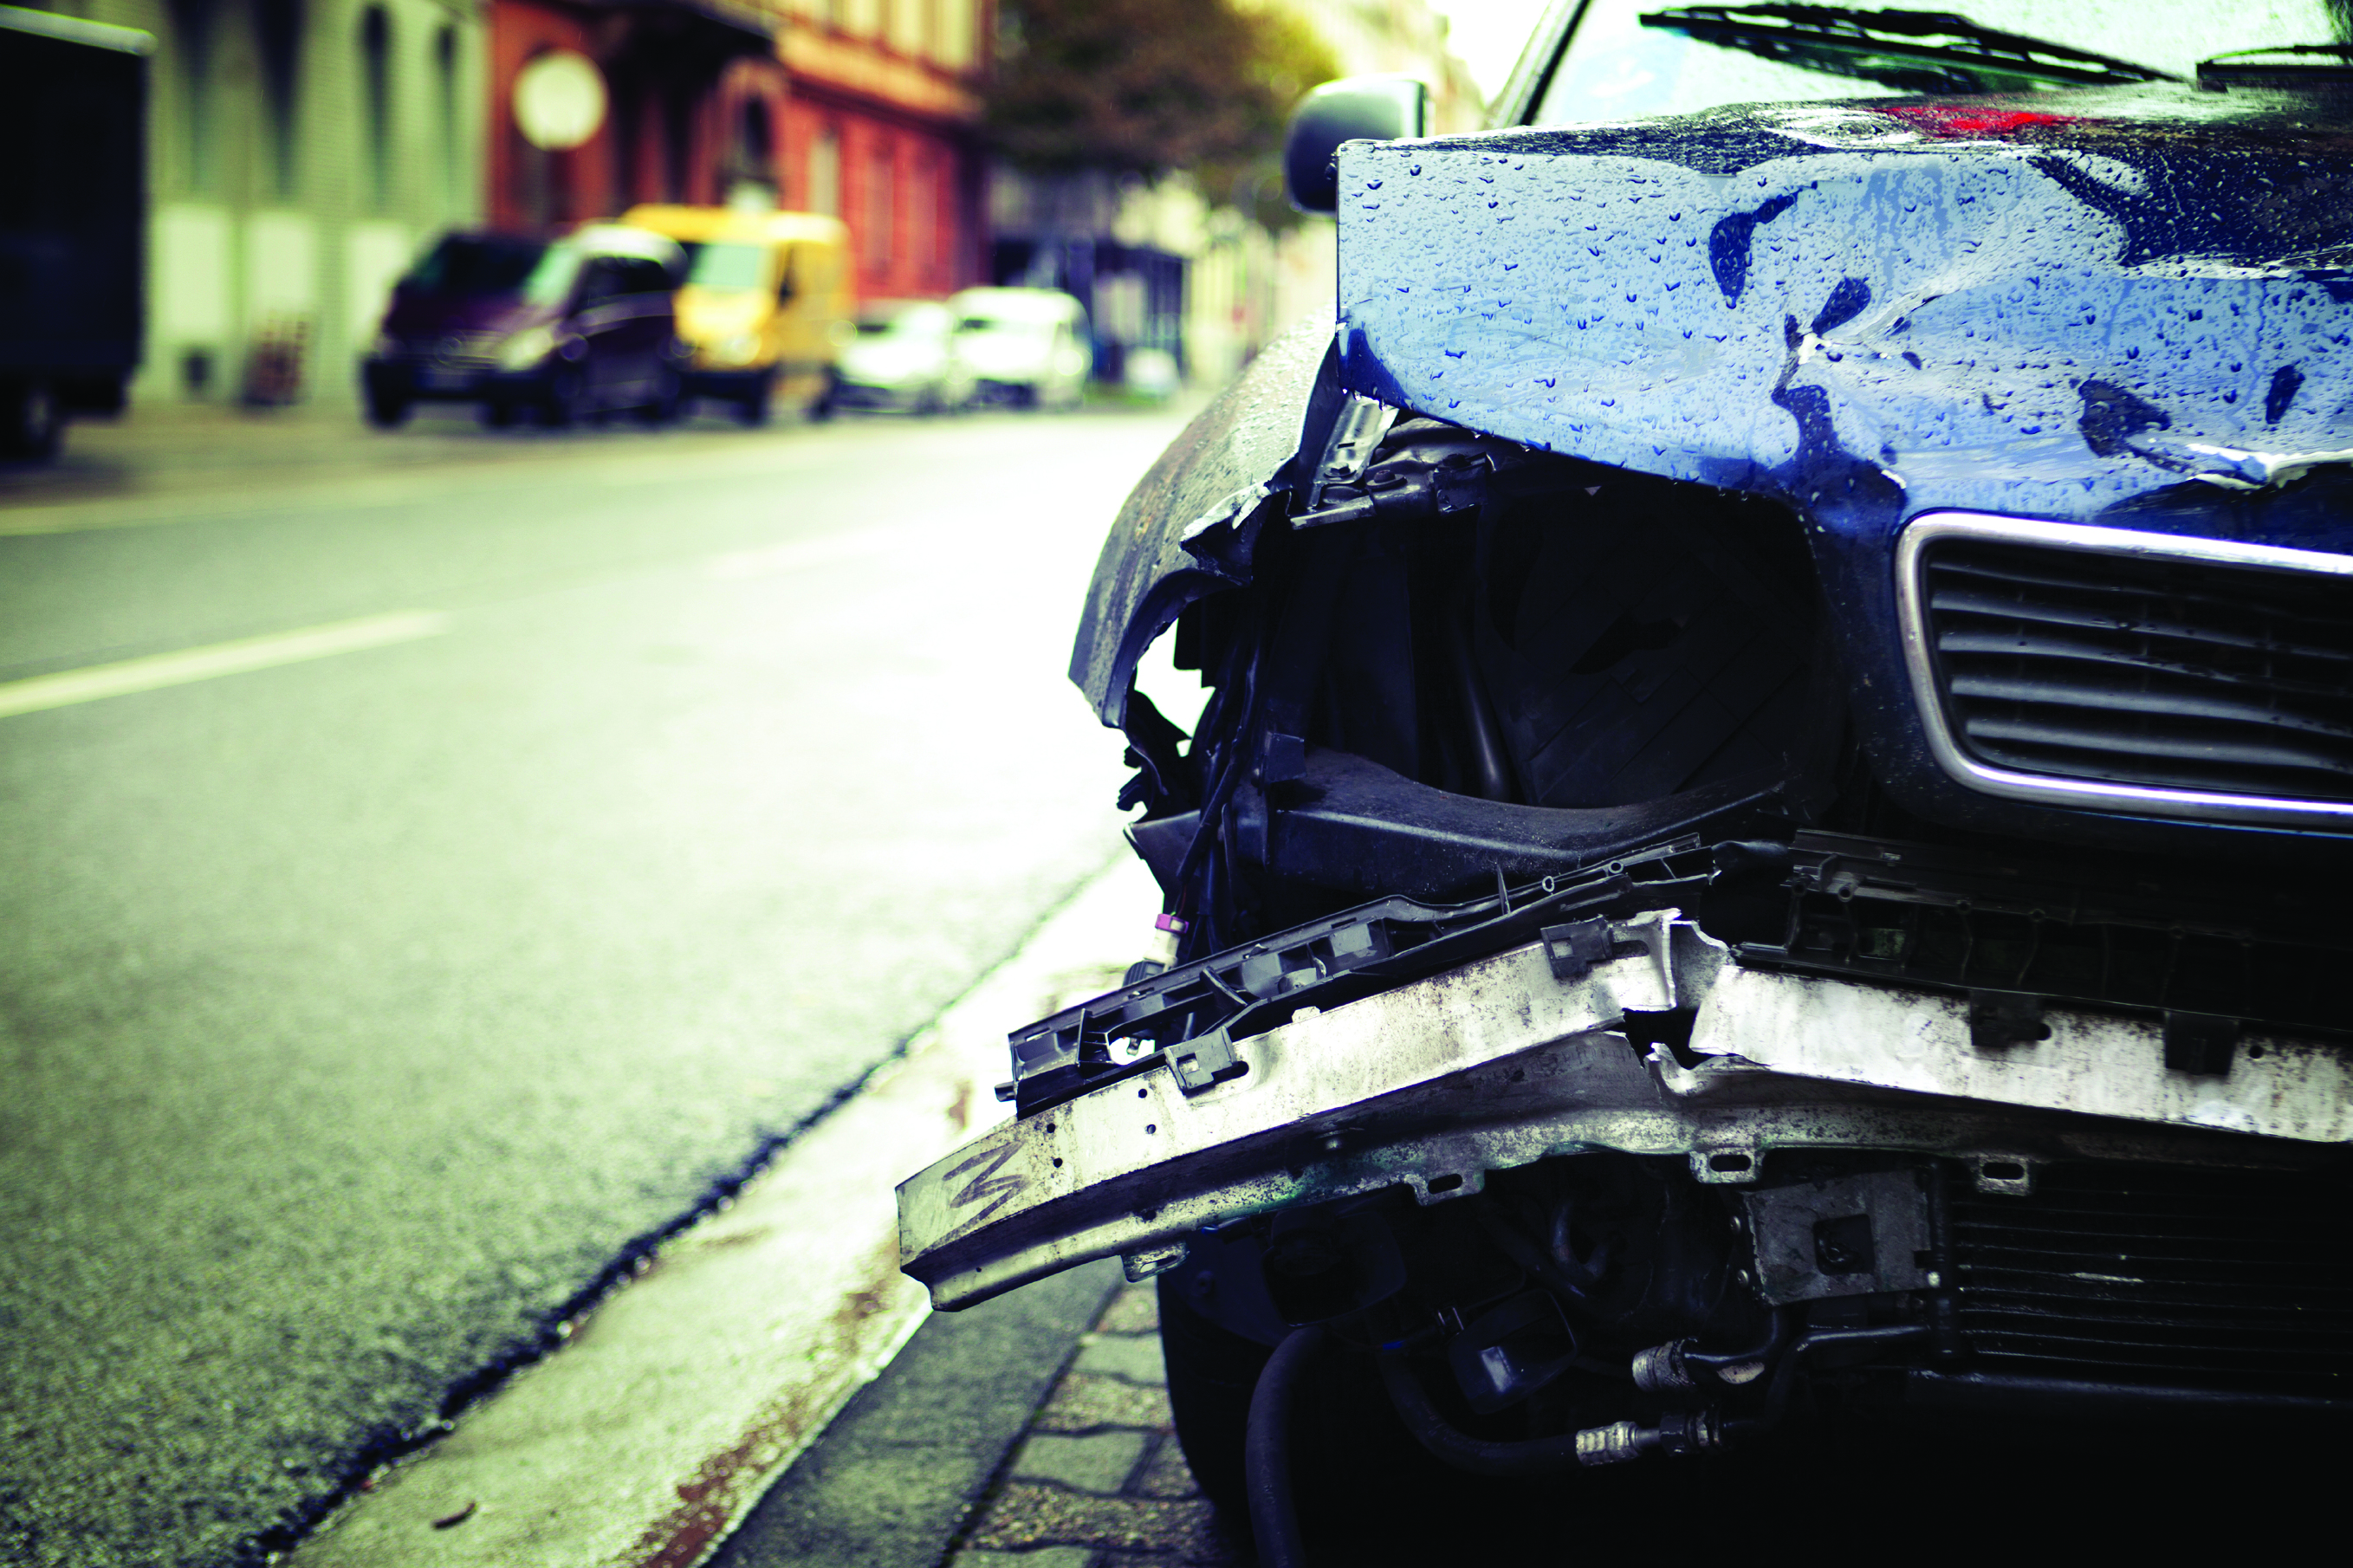 Hit and run car accident